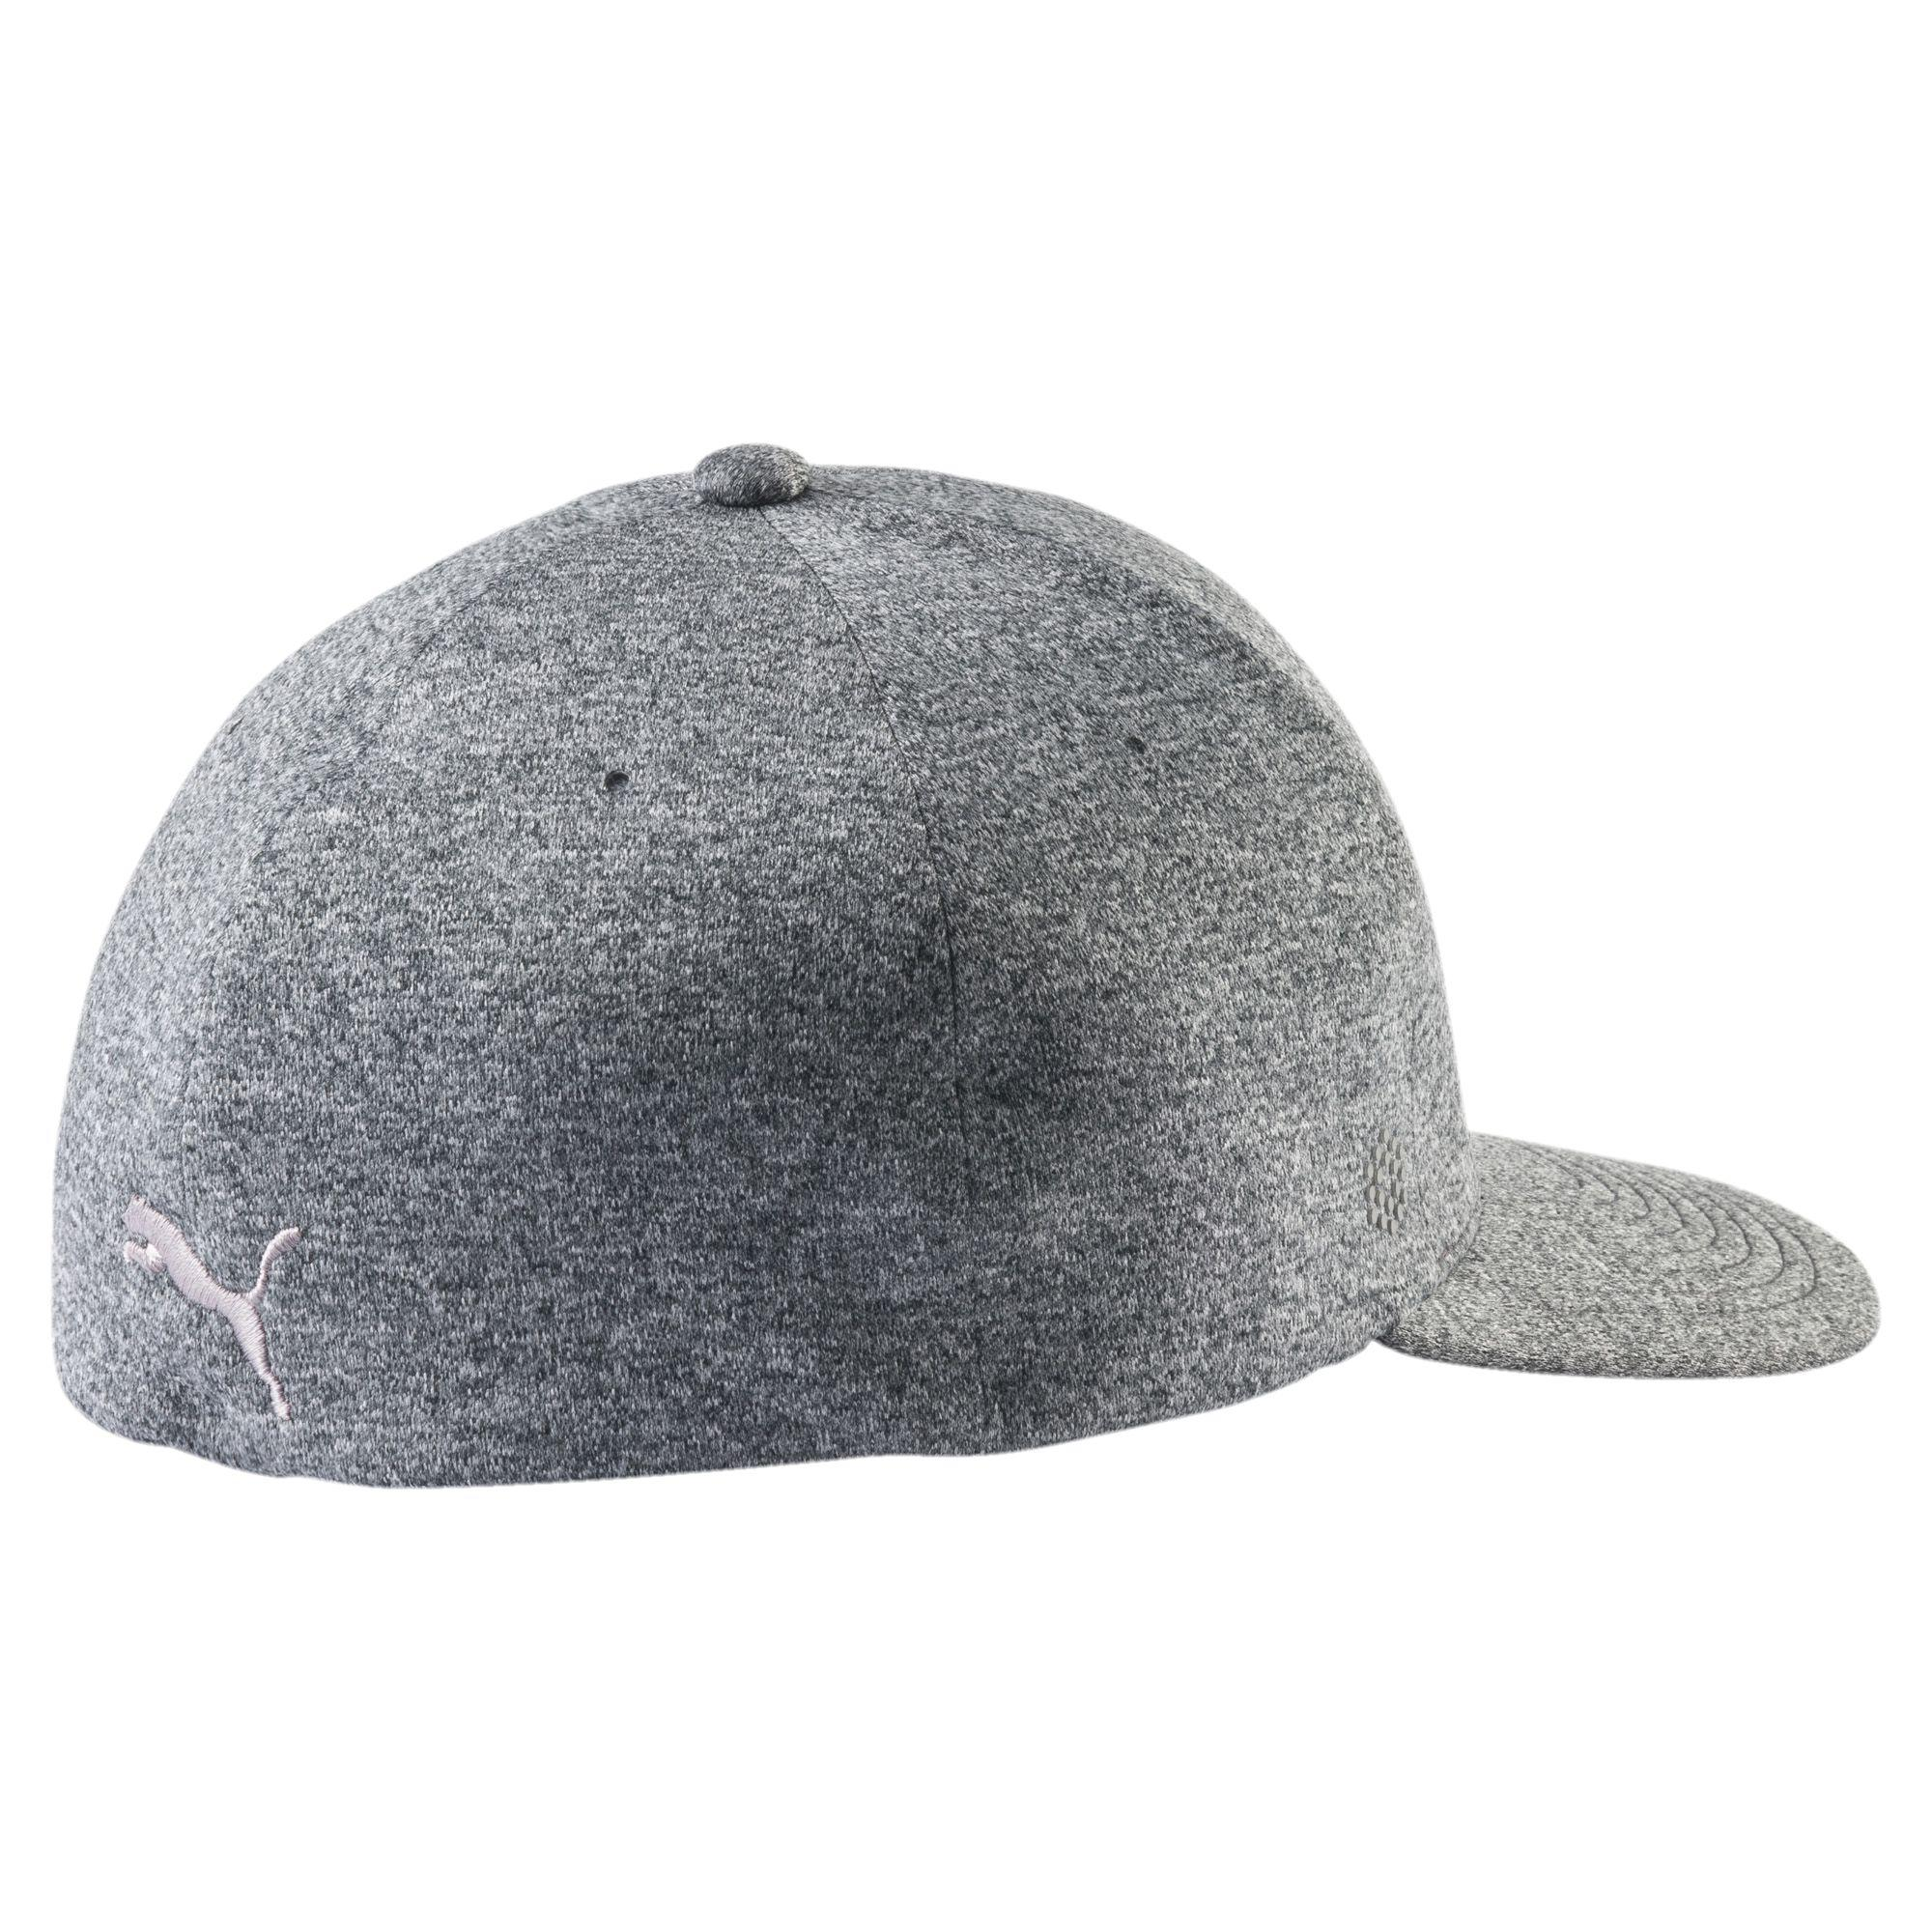 f37227fa03f26 ... germany lyst puma golf mens evoknit delta flexfit cap in gray for men  b82b5 bfc2f